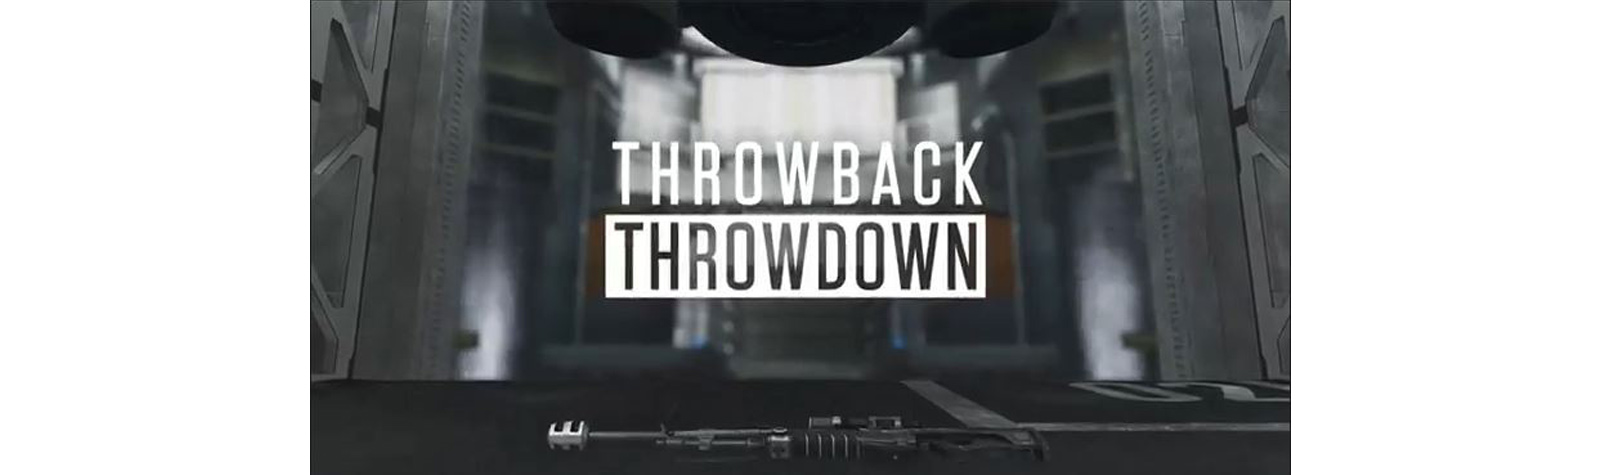 HCS Throwback Throwdown Series Results – 1/3/20